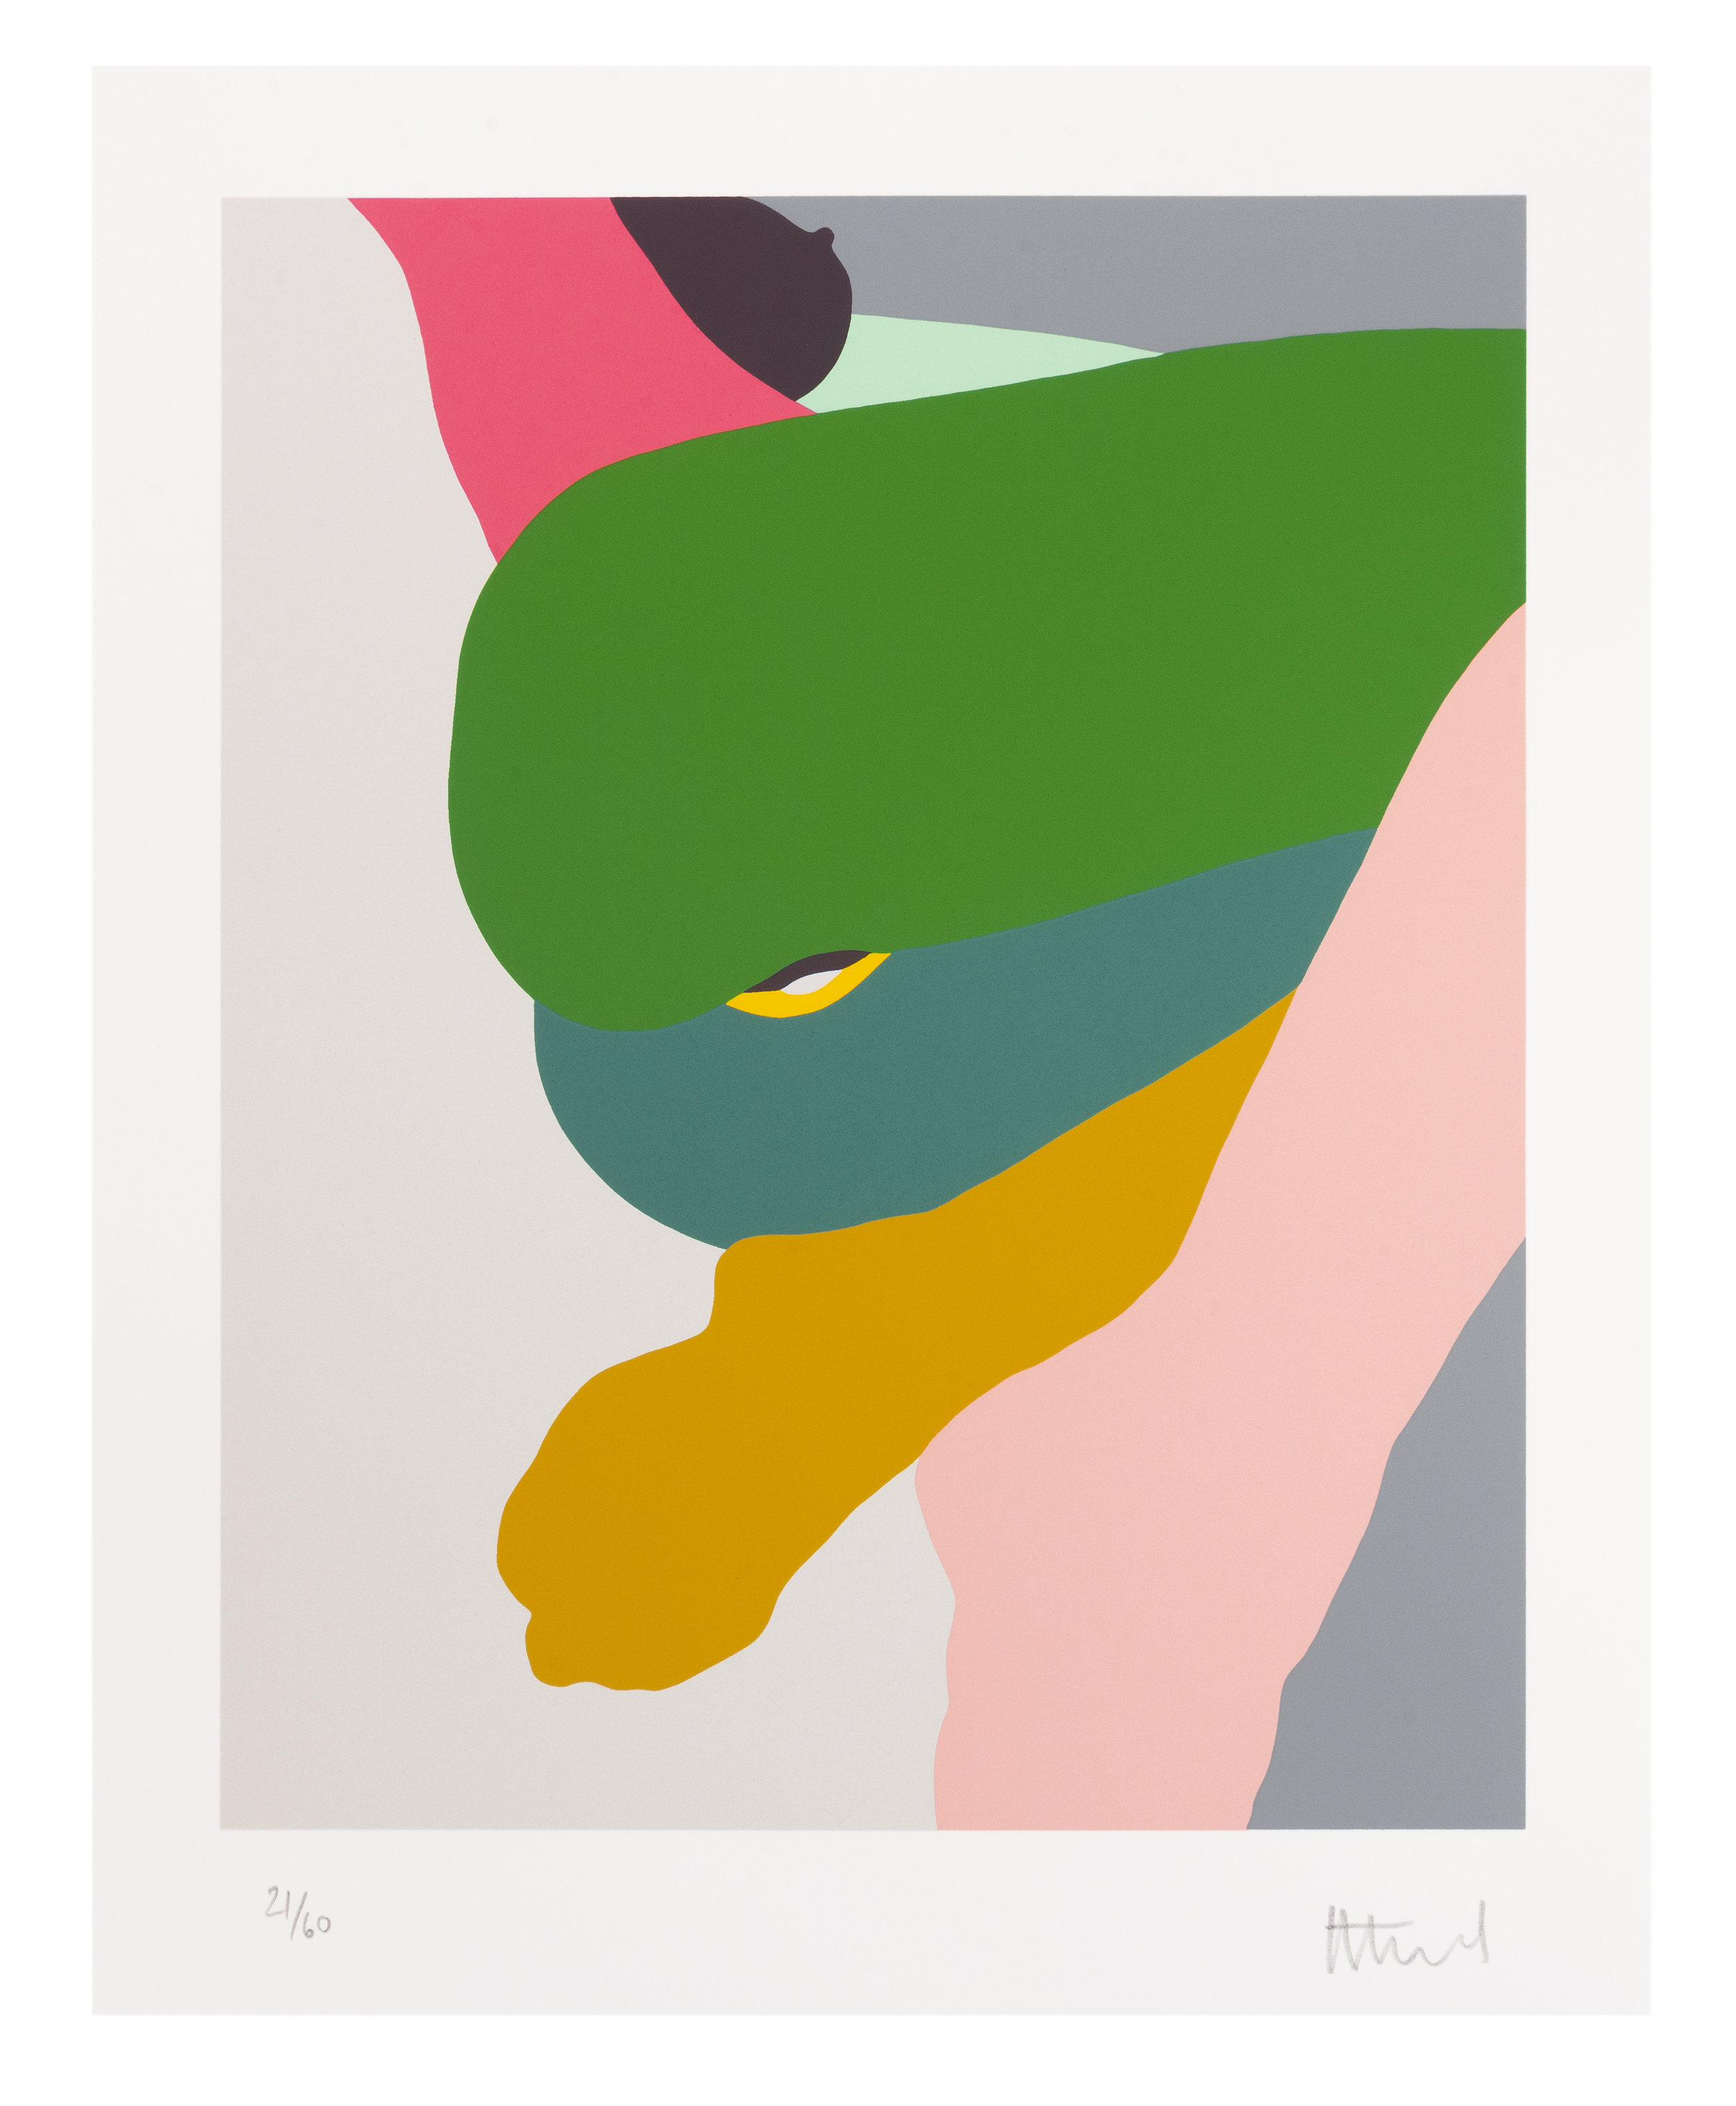 Helen Beard  Syntribate, 2019  Ten Colour Silkscreen Print on 410 gsm  Somerset tub sized radiant white paper  381 x 305 mm  Signed and Numbered  Edition of 60  £480 (Including VAT)  Approximate Packaging and Shipping:  UK £15-30  Europe £40-60  Rest of the World £50-£80  We will be able to give you an exact price on confirmation of purchase with a shipping address.